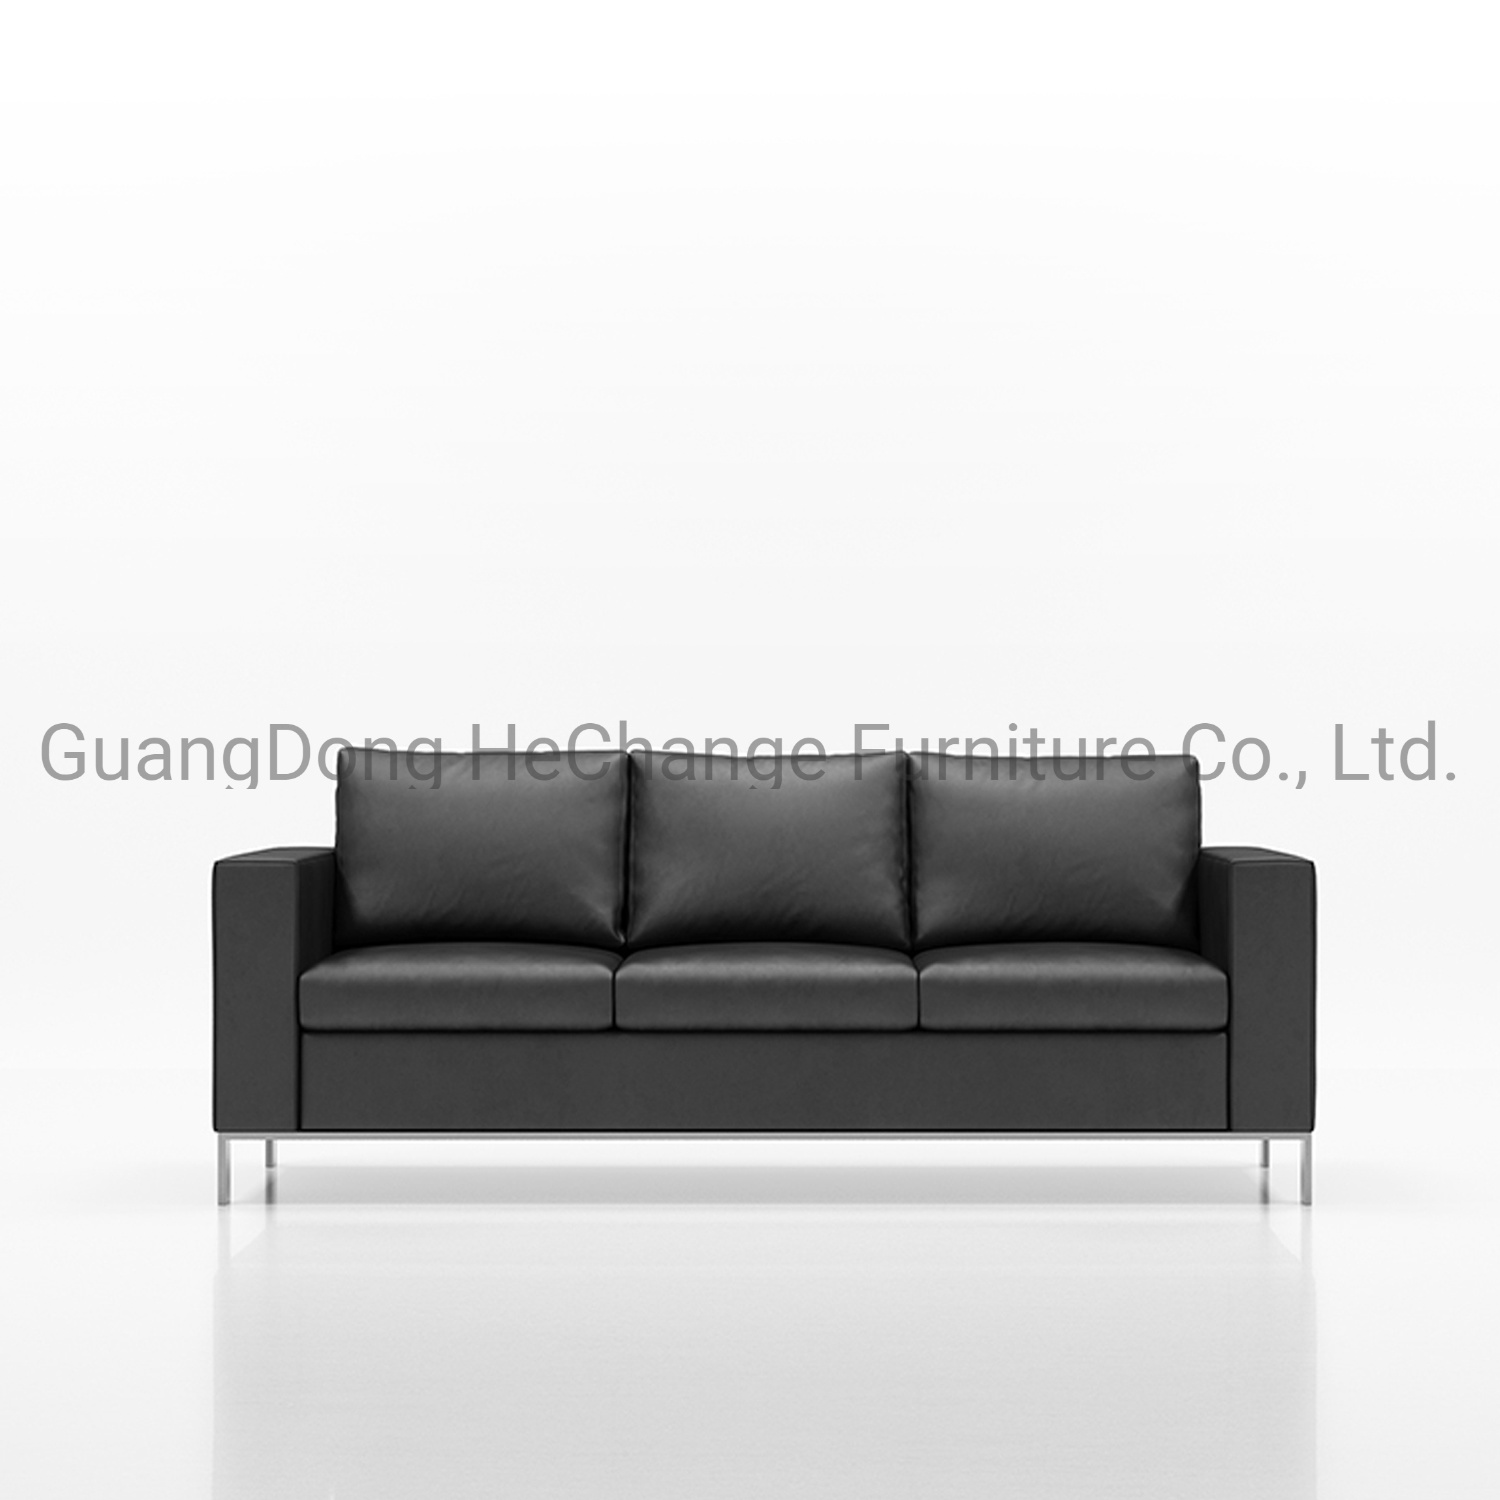 Incredible Miami Modern Leather Sectional Sofa For Living Room Global Camellatalisay Diy Chair Ideas Camellatalisaycom